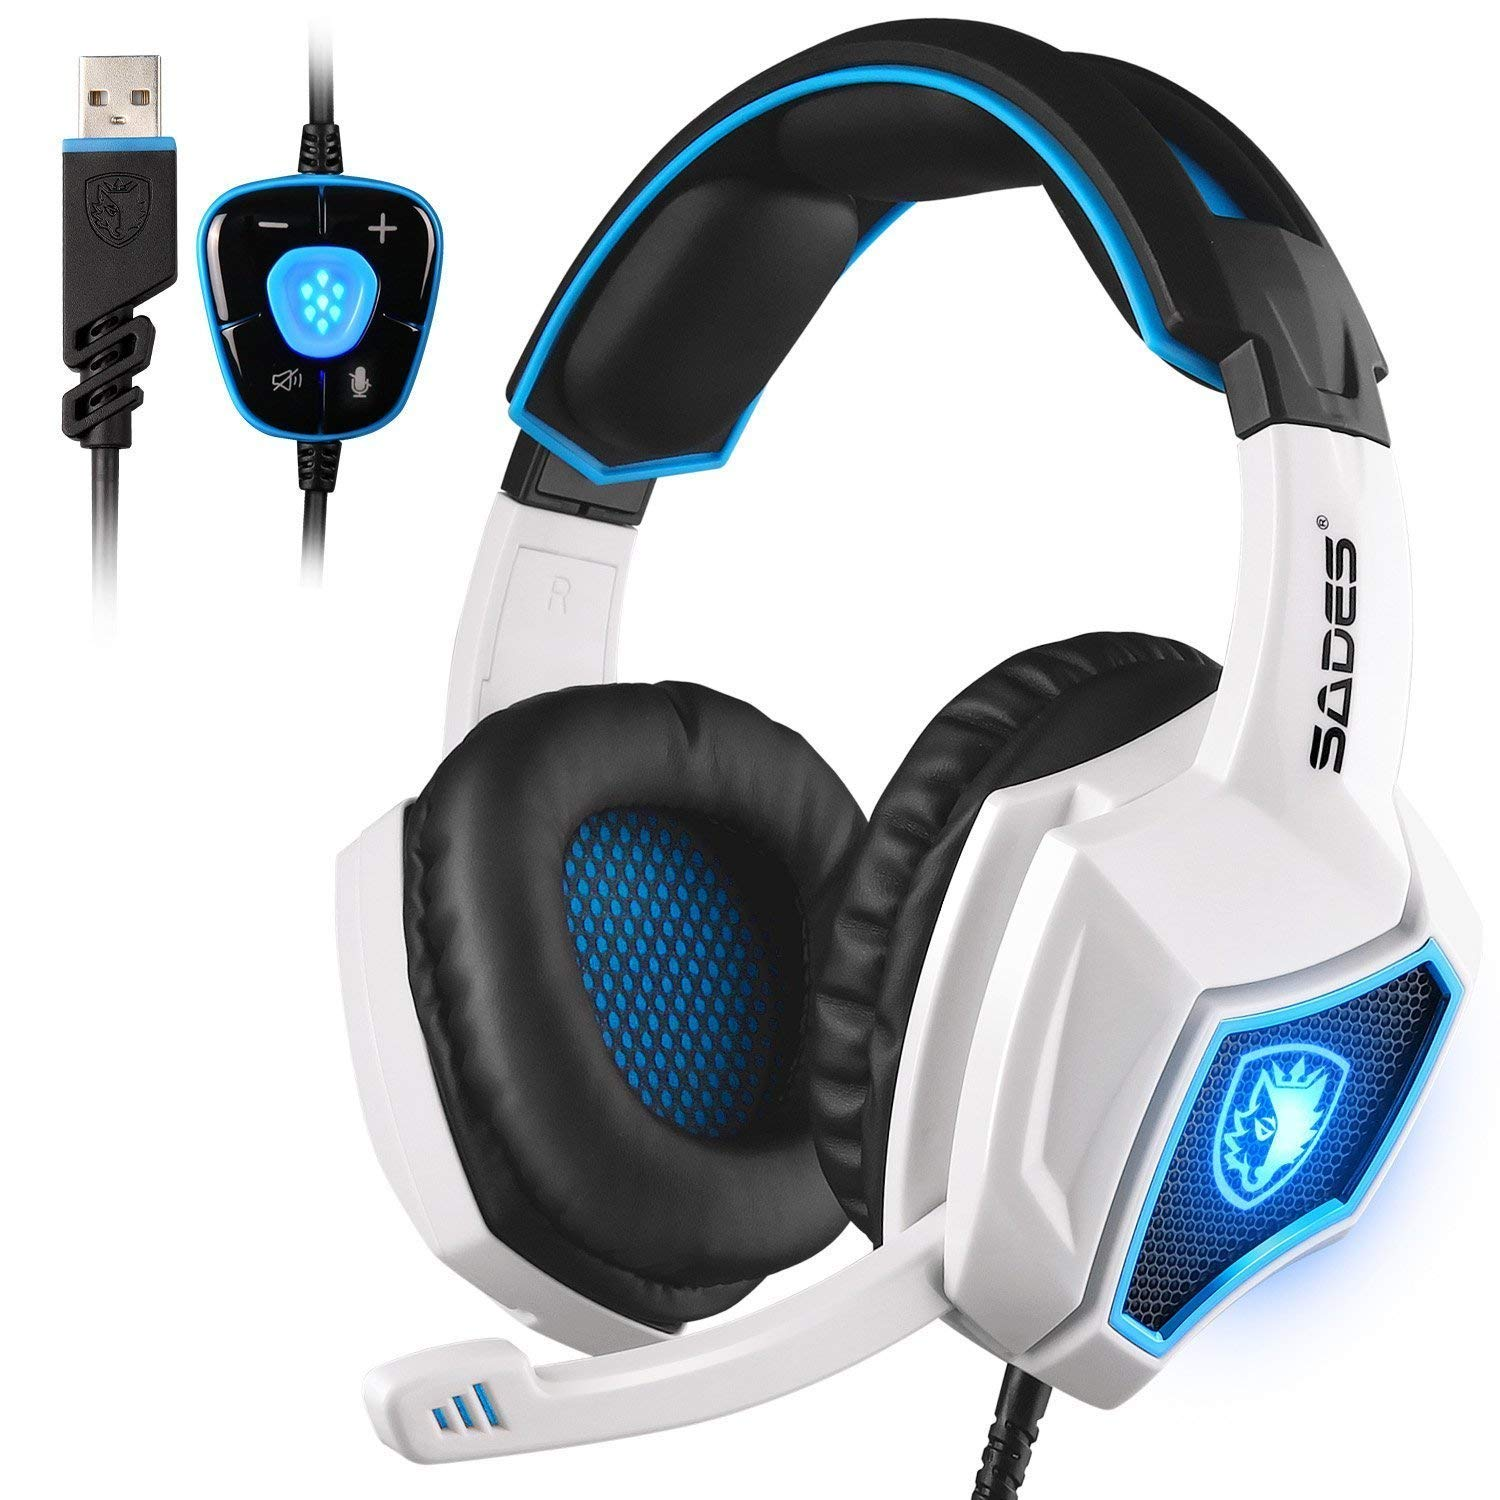 Sades best gaming headset under $30